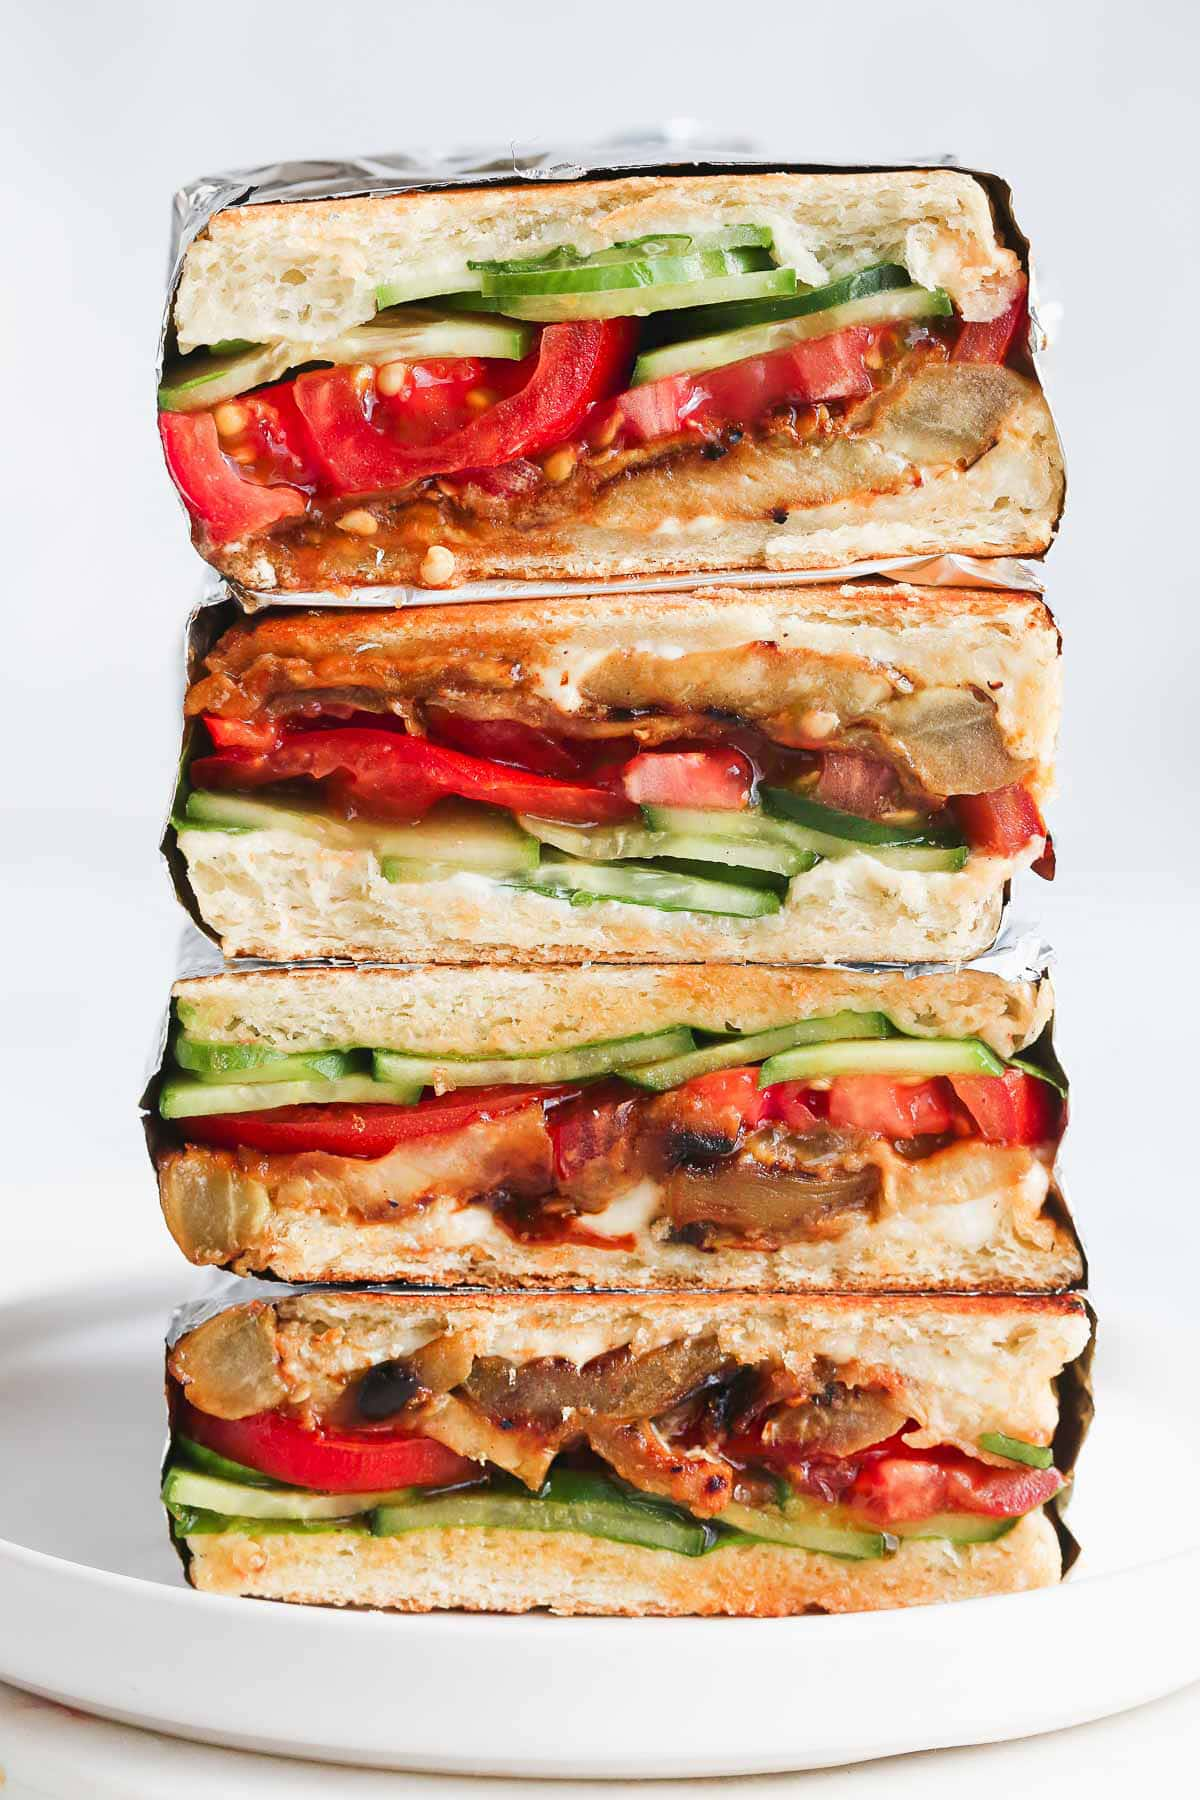 Vegan Eggplant Sandwiches stacked on a white plate